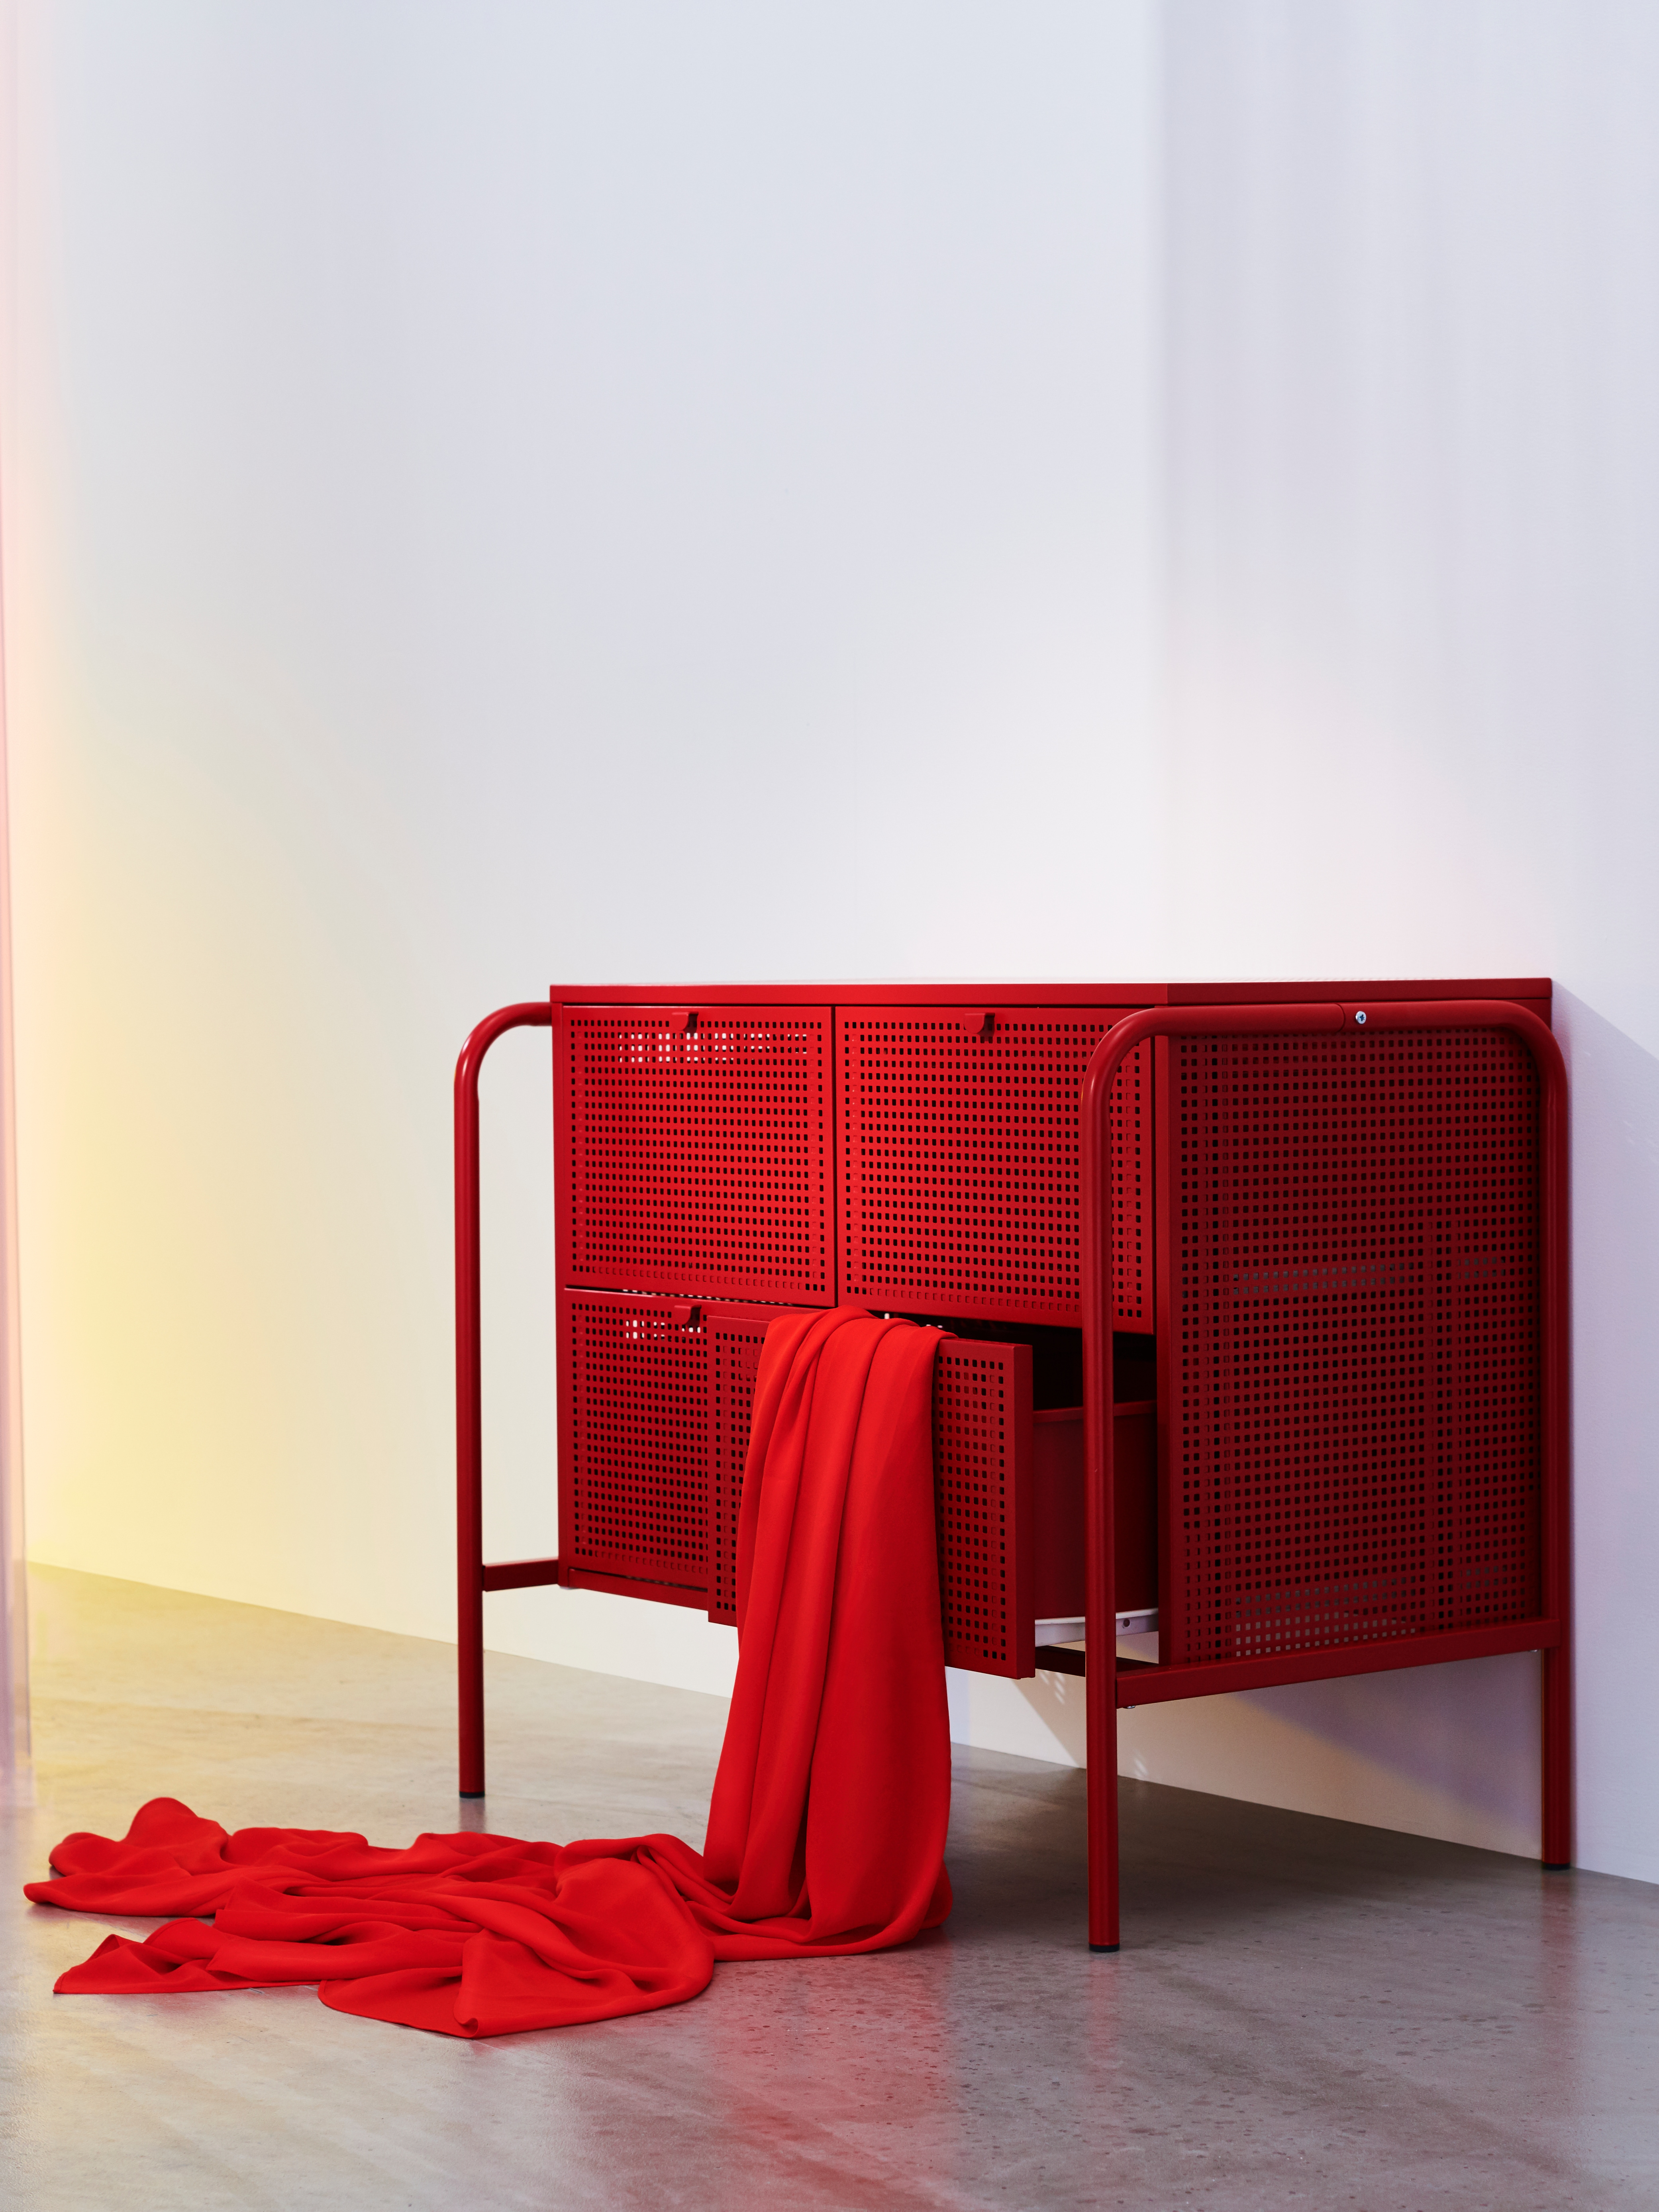 A red NIKKEBY chest of drawers in an industrial style with perforated metal, made for general storage.